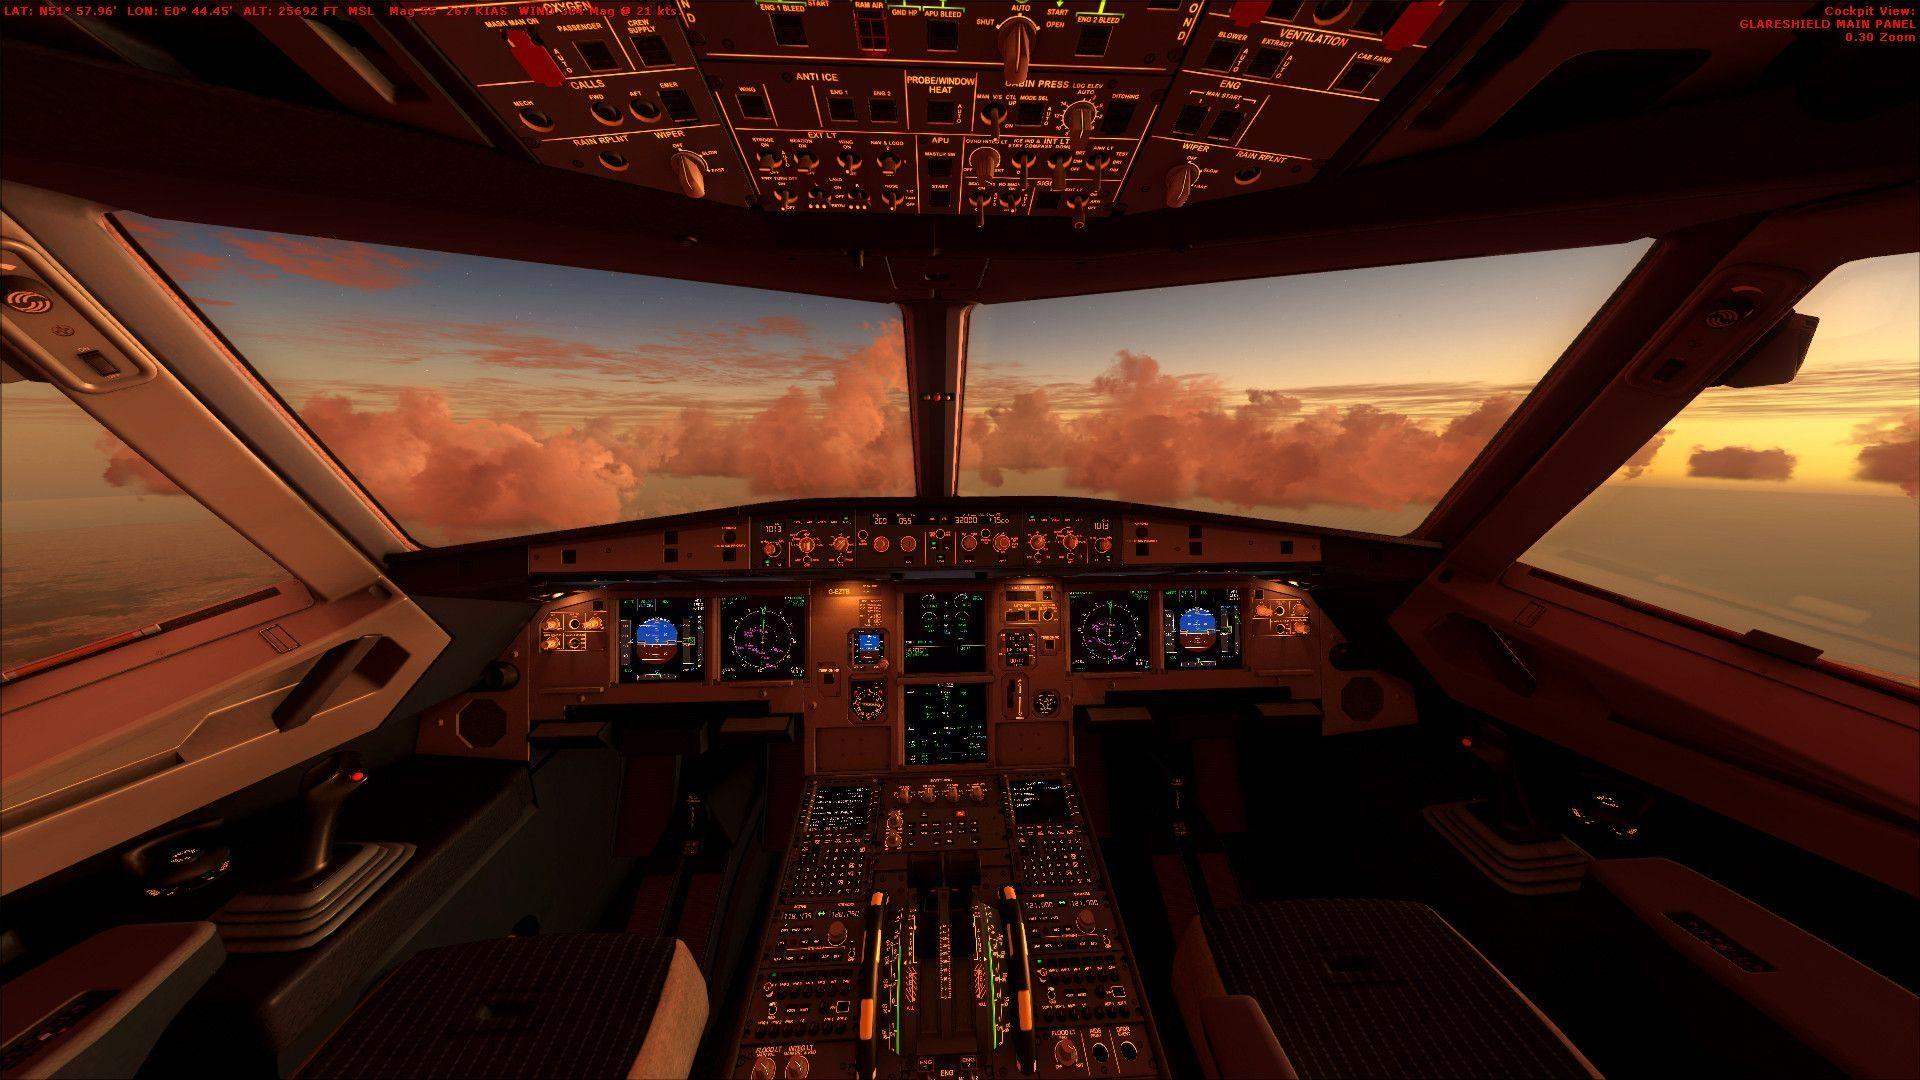 Airplane Cockpit Hd Wallpapers Wallpaper Cave